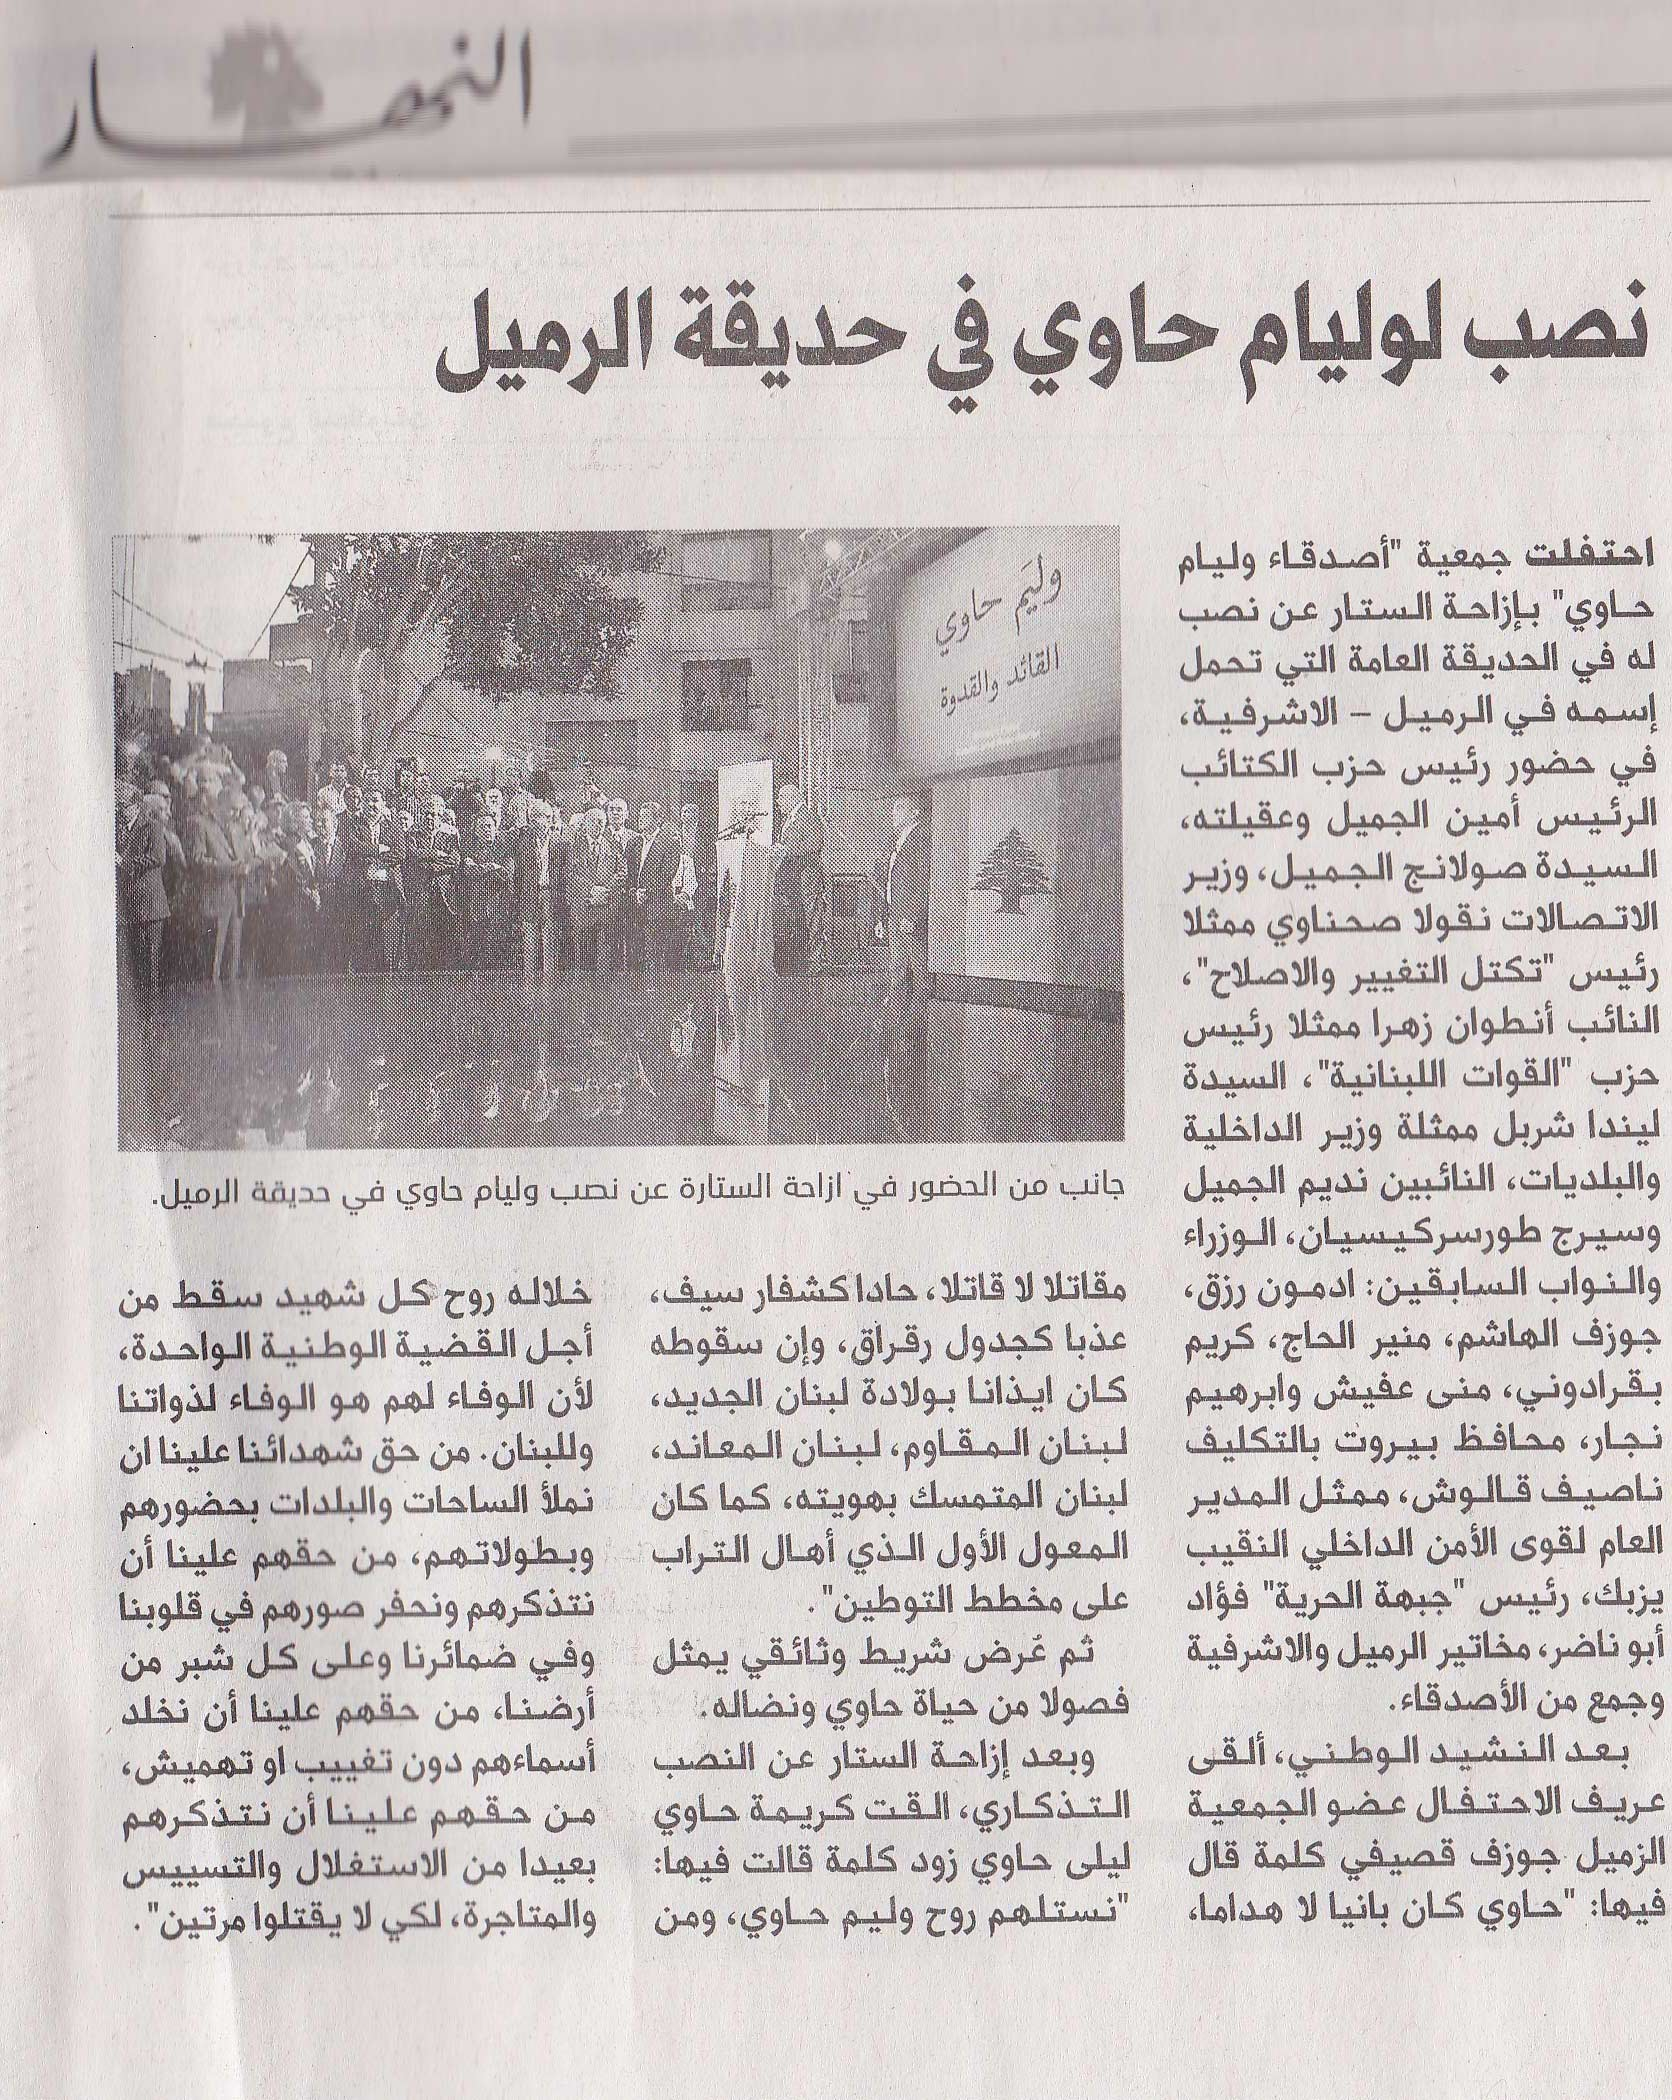 Al Nahar Newspaper | Oct 26, 2013